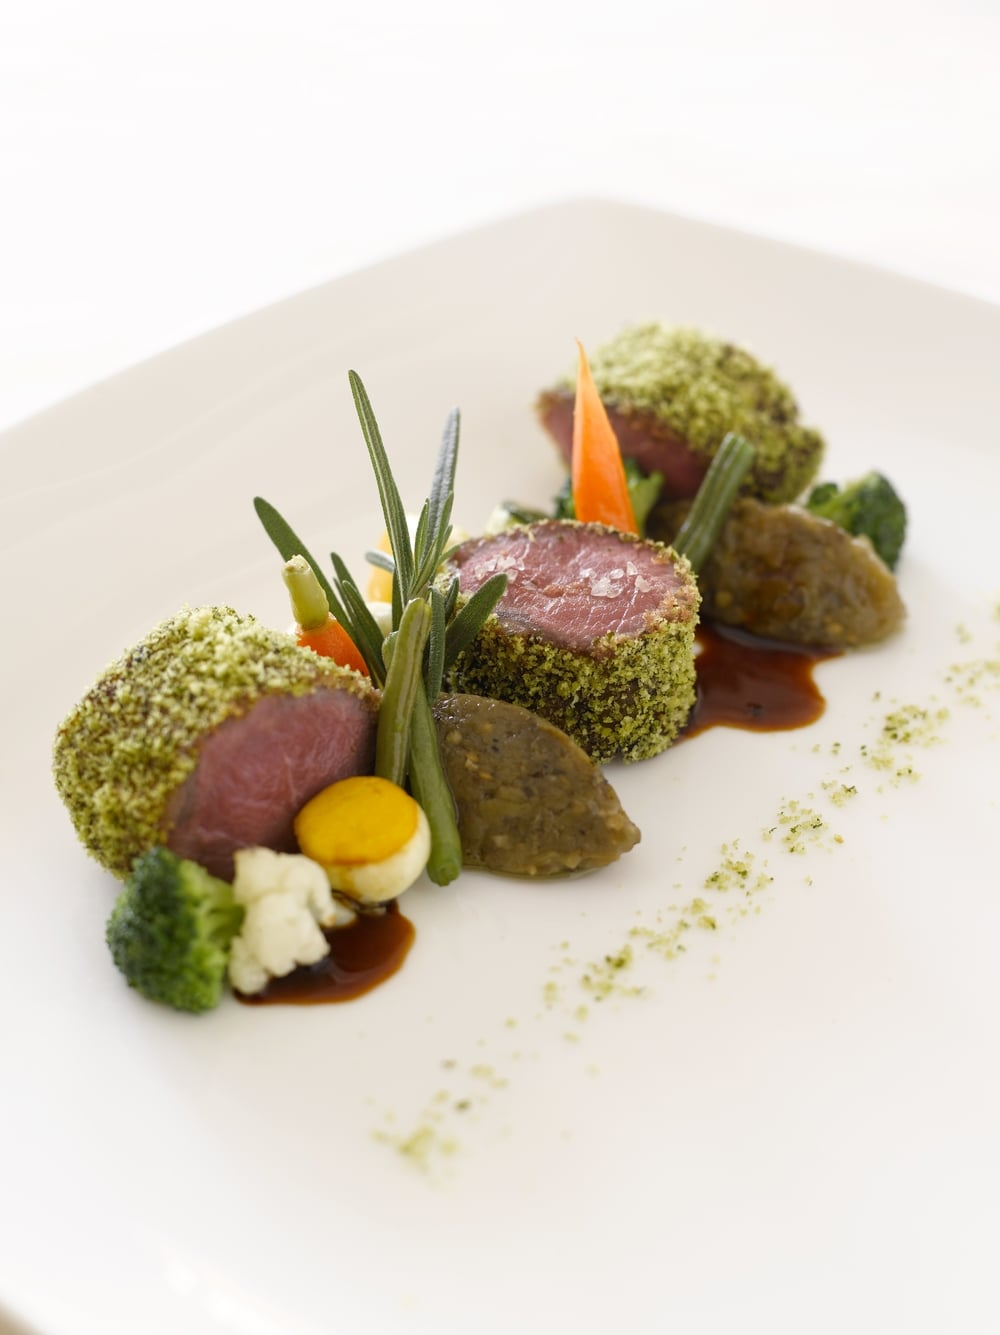 Herb-crusted Lamb Loin | Photo Credit: Mandarin Oriental, Singapore